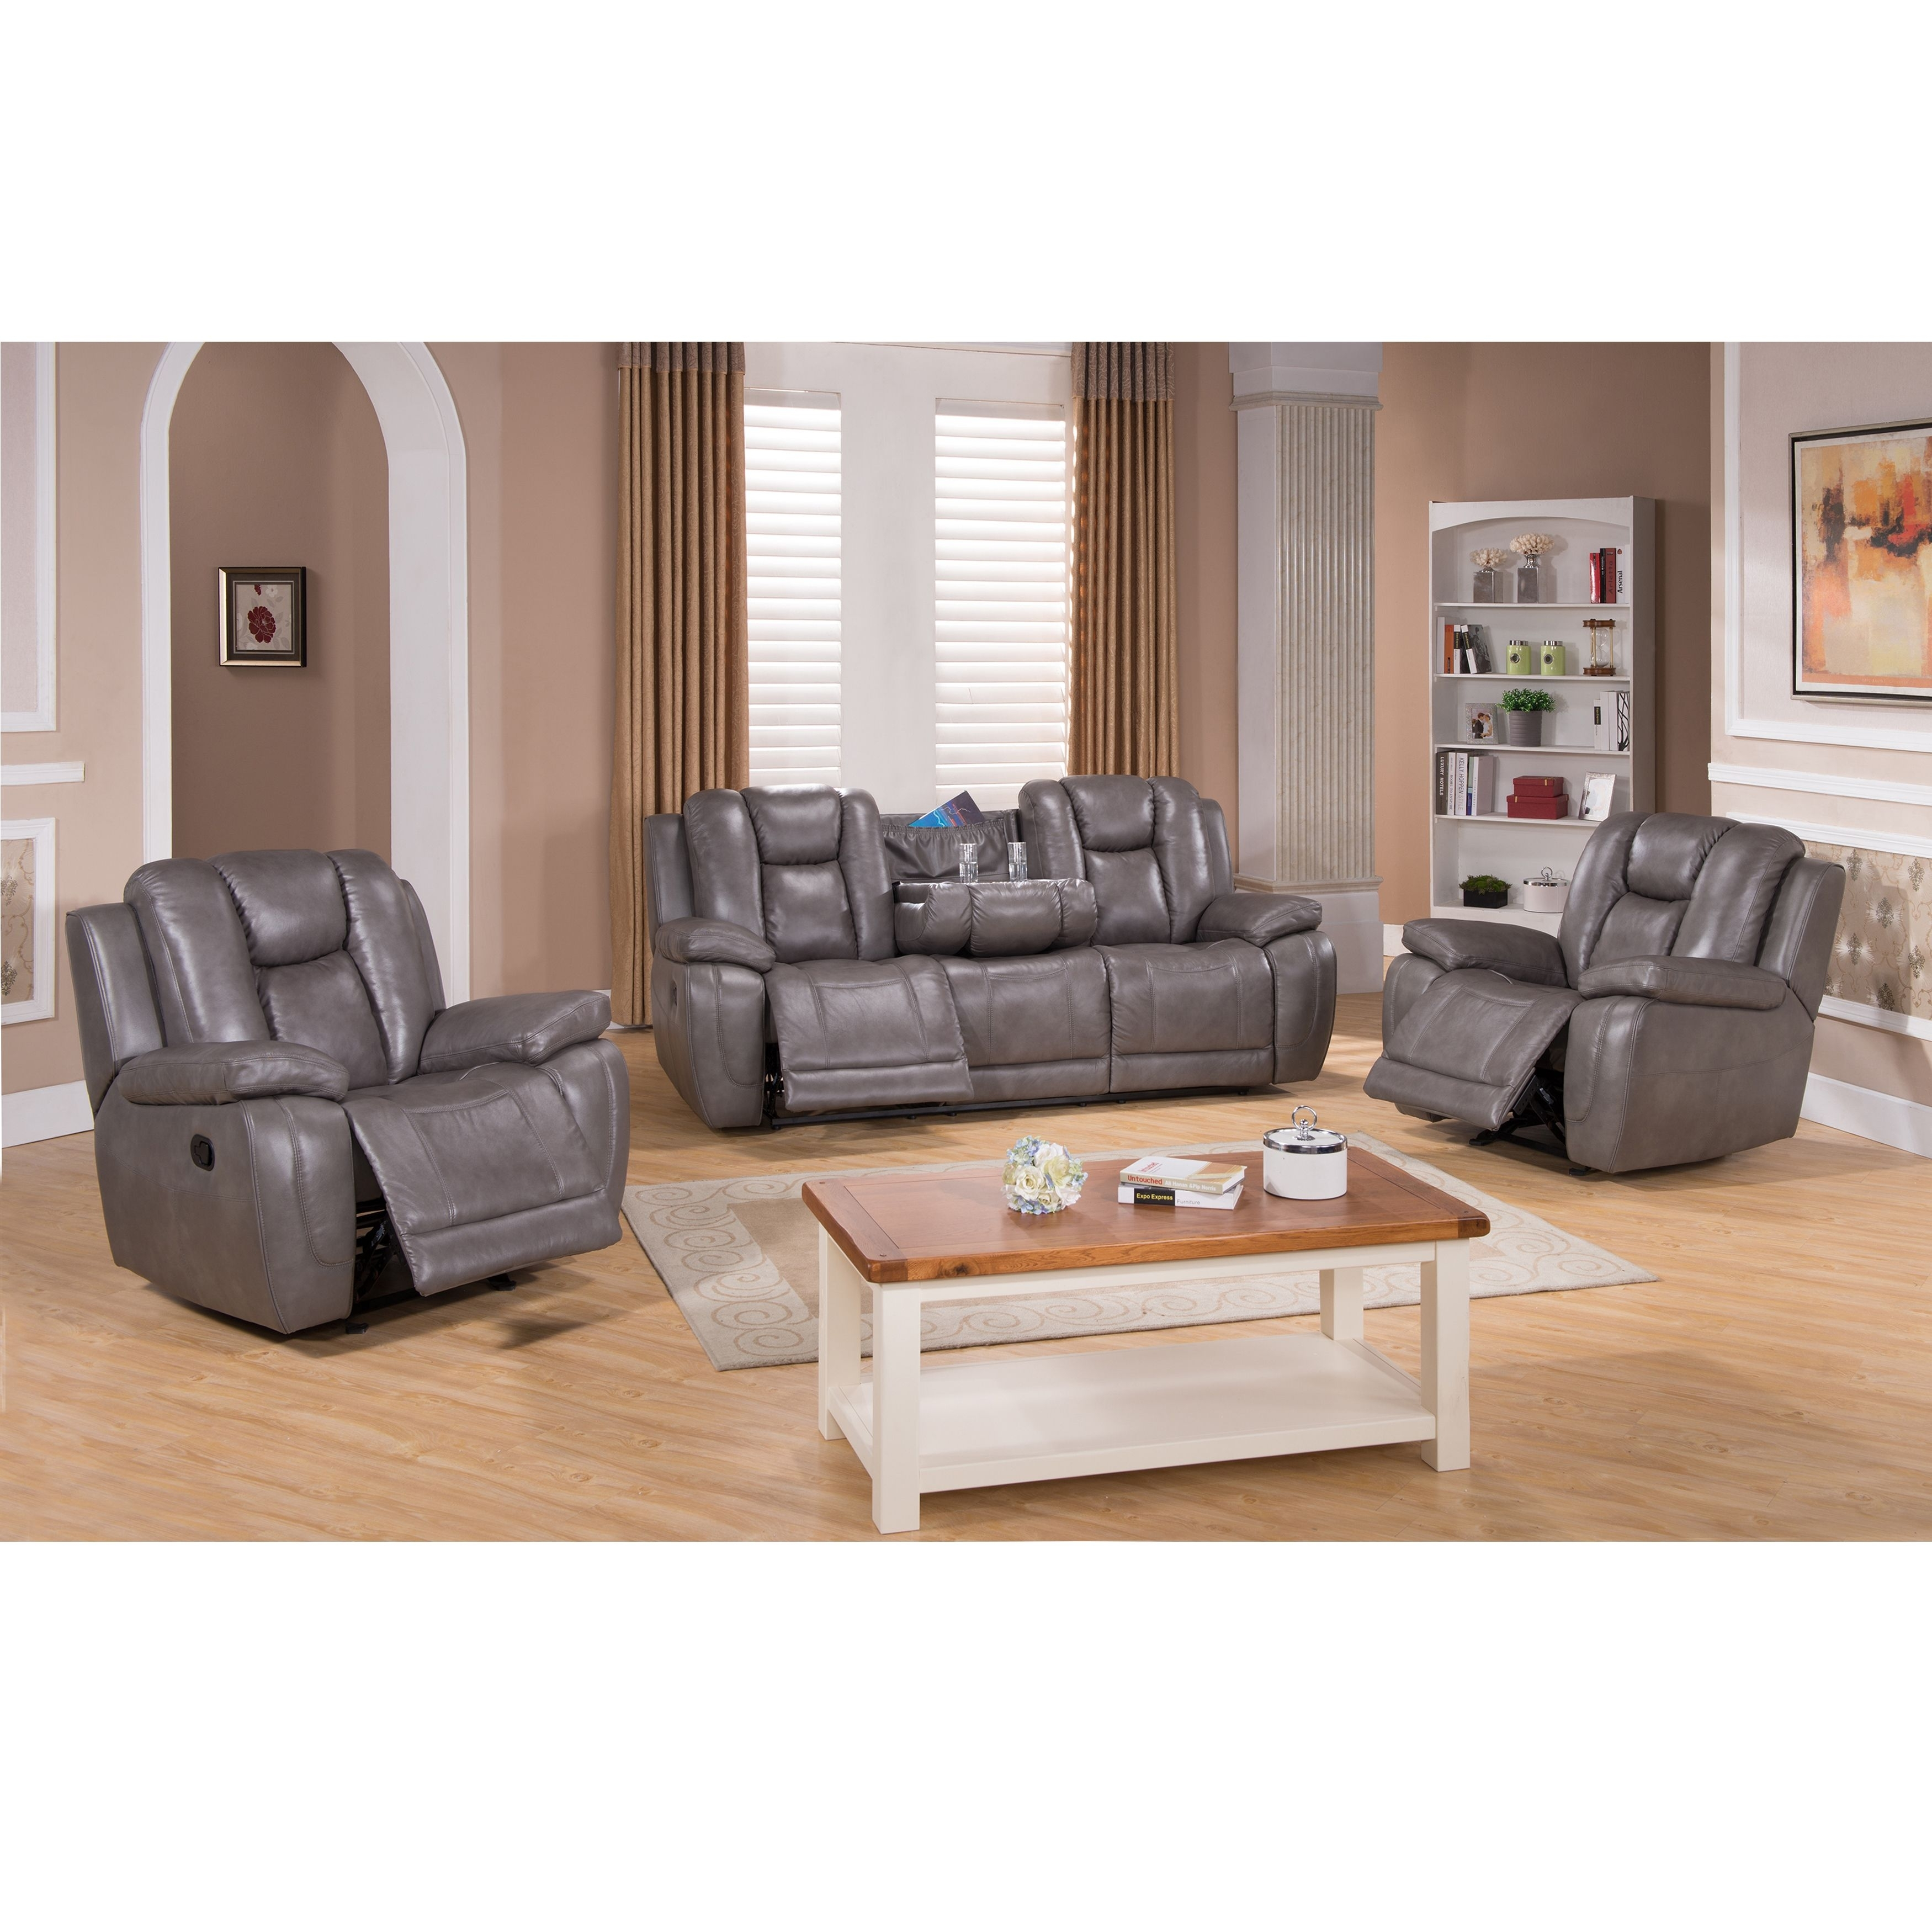 Galaxy Gray Top Grain Leather Lay Flat Reclining Sofa And Two in Travis Dk Grey Leather 6 Piece Power Reclining Sectionals With Power Headrest & Usb (Image 8 of 30)